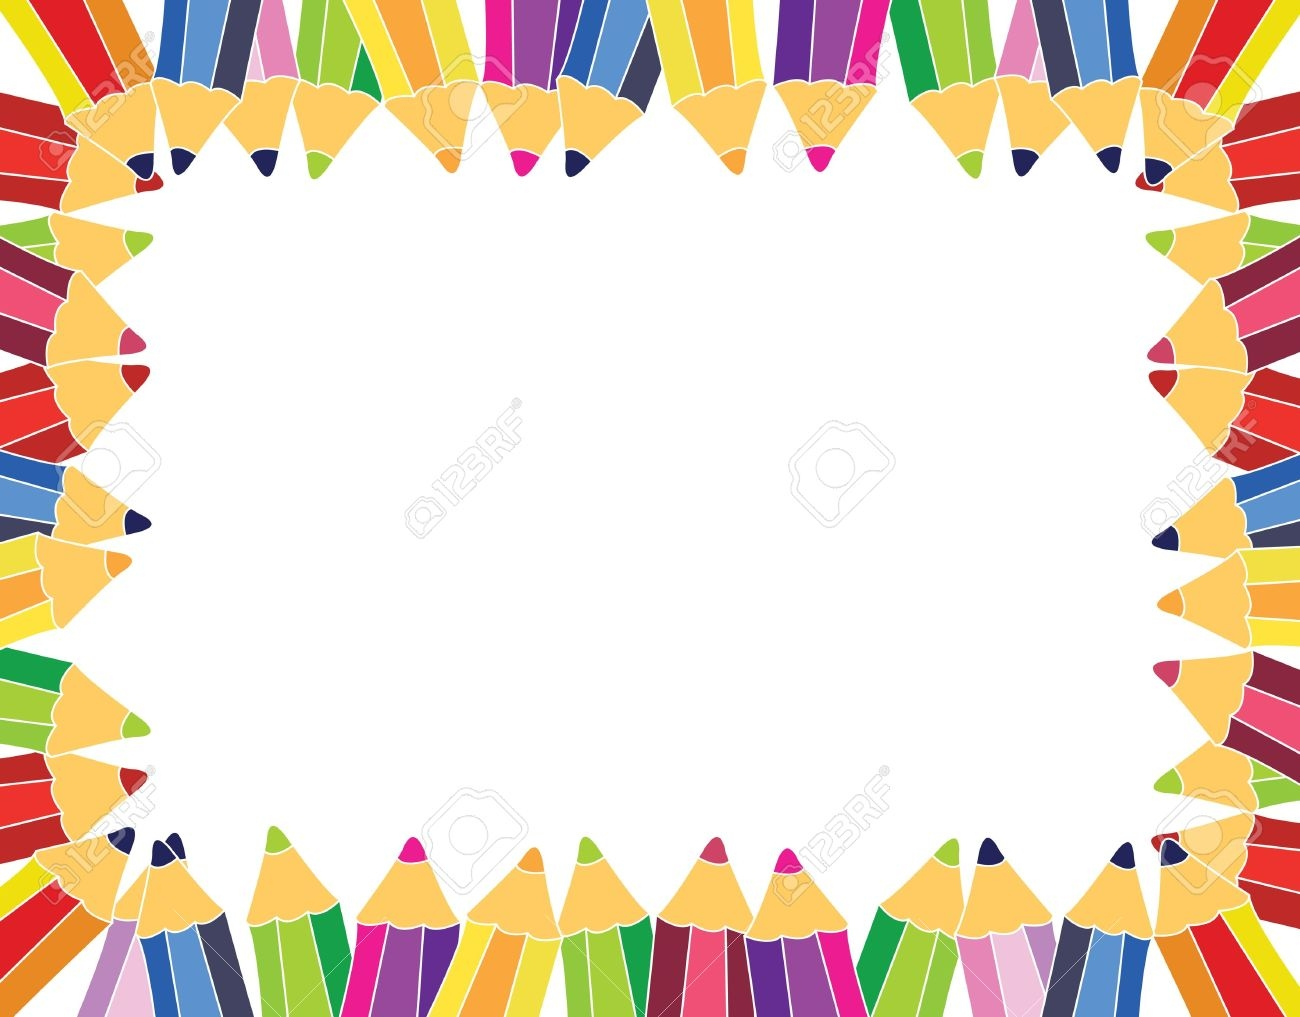 school supplies border clipart 8